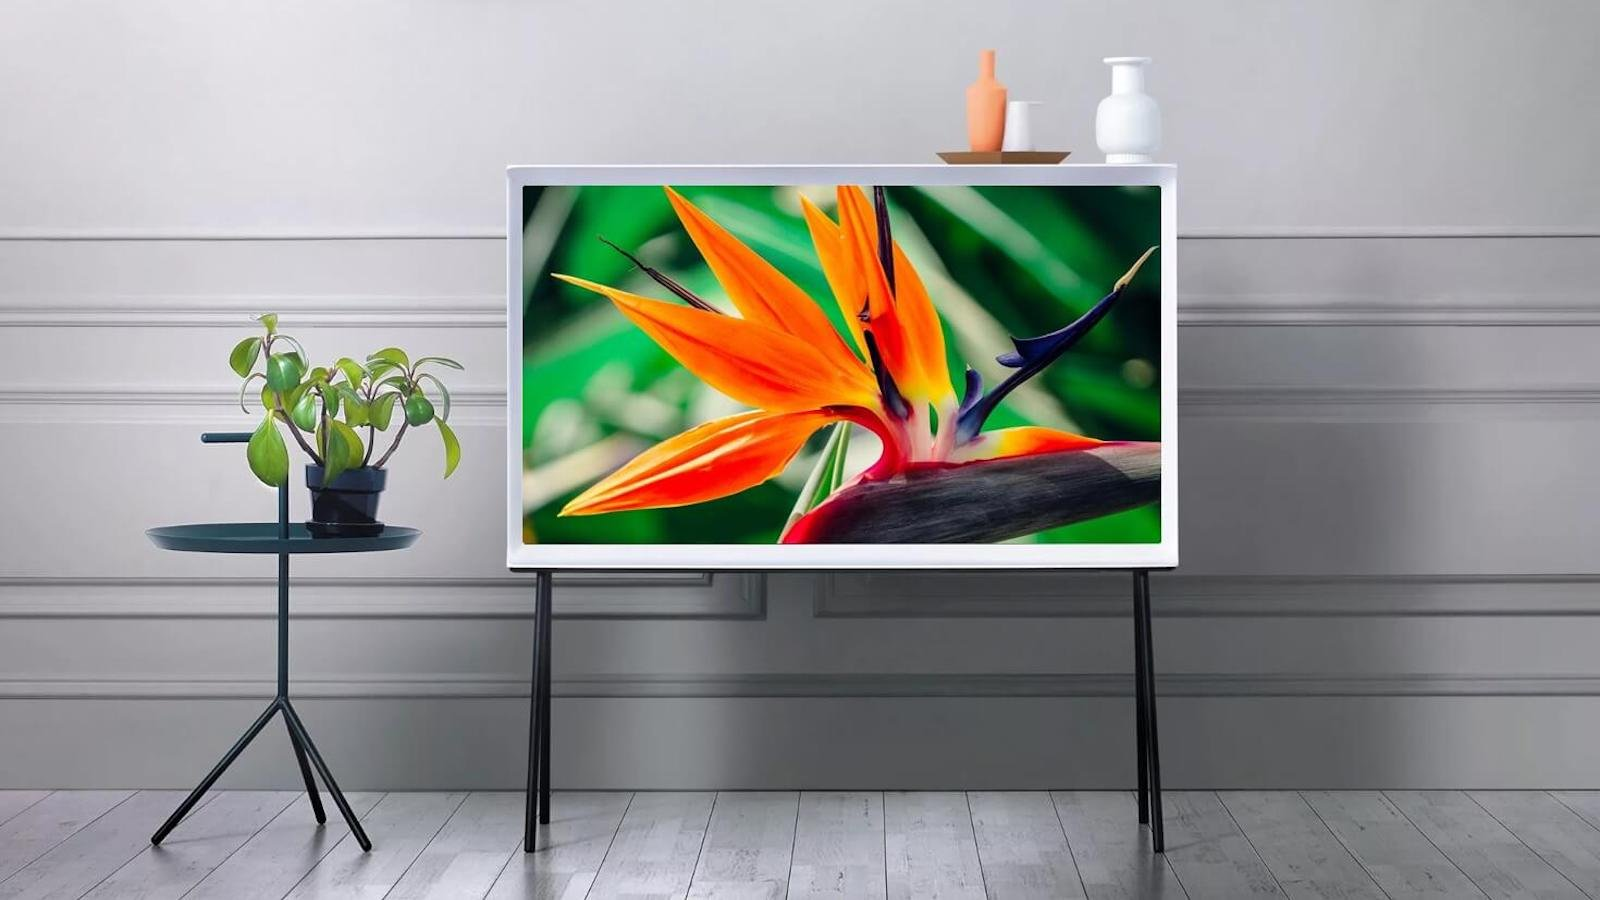 10 Smart TVs to buy in 2021